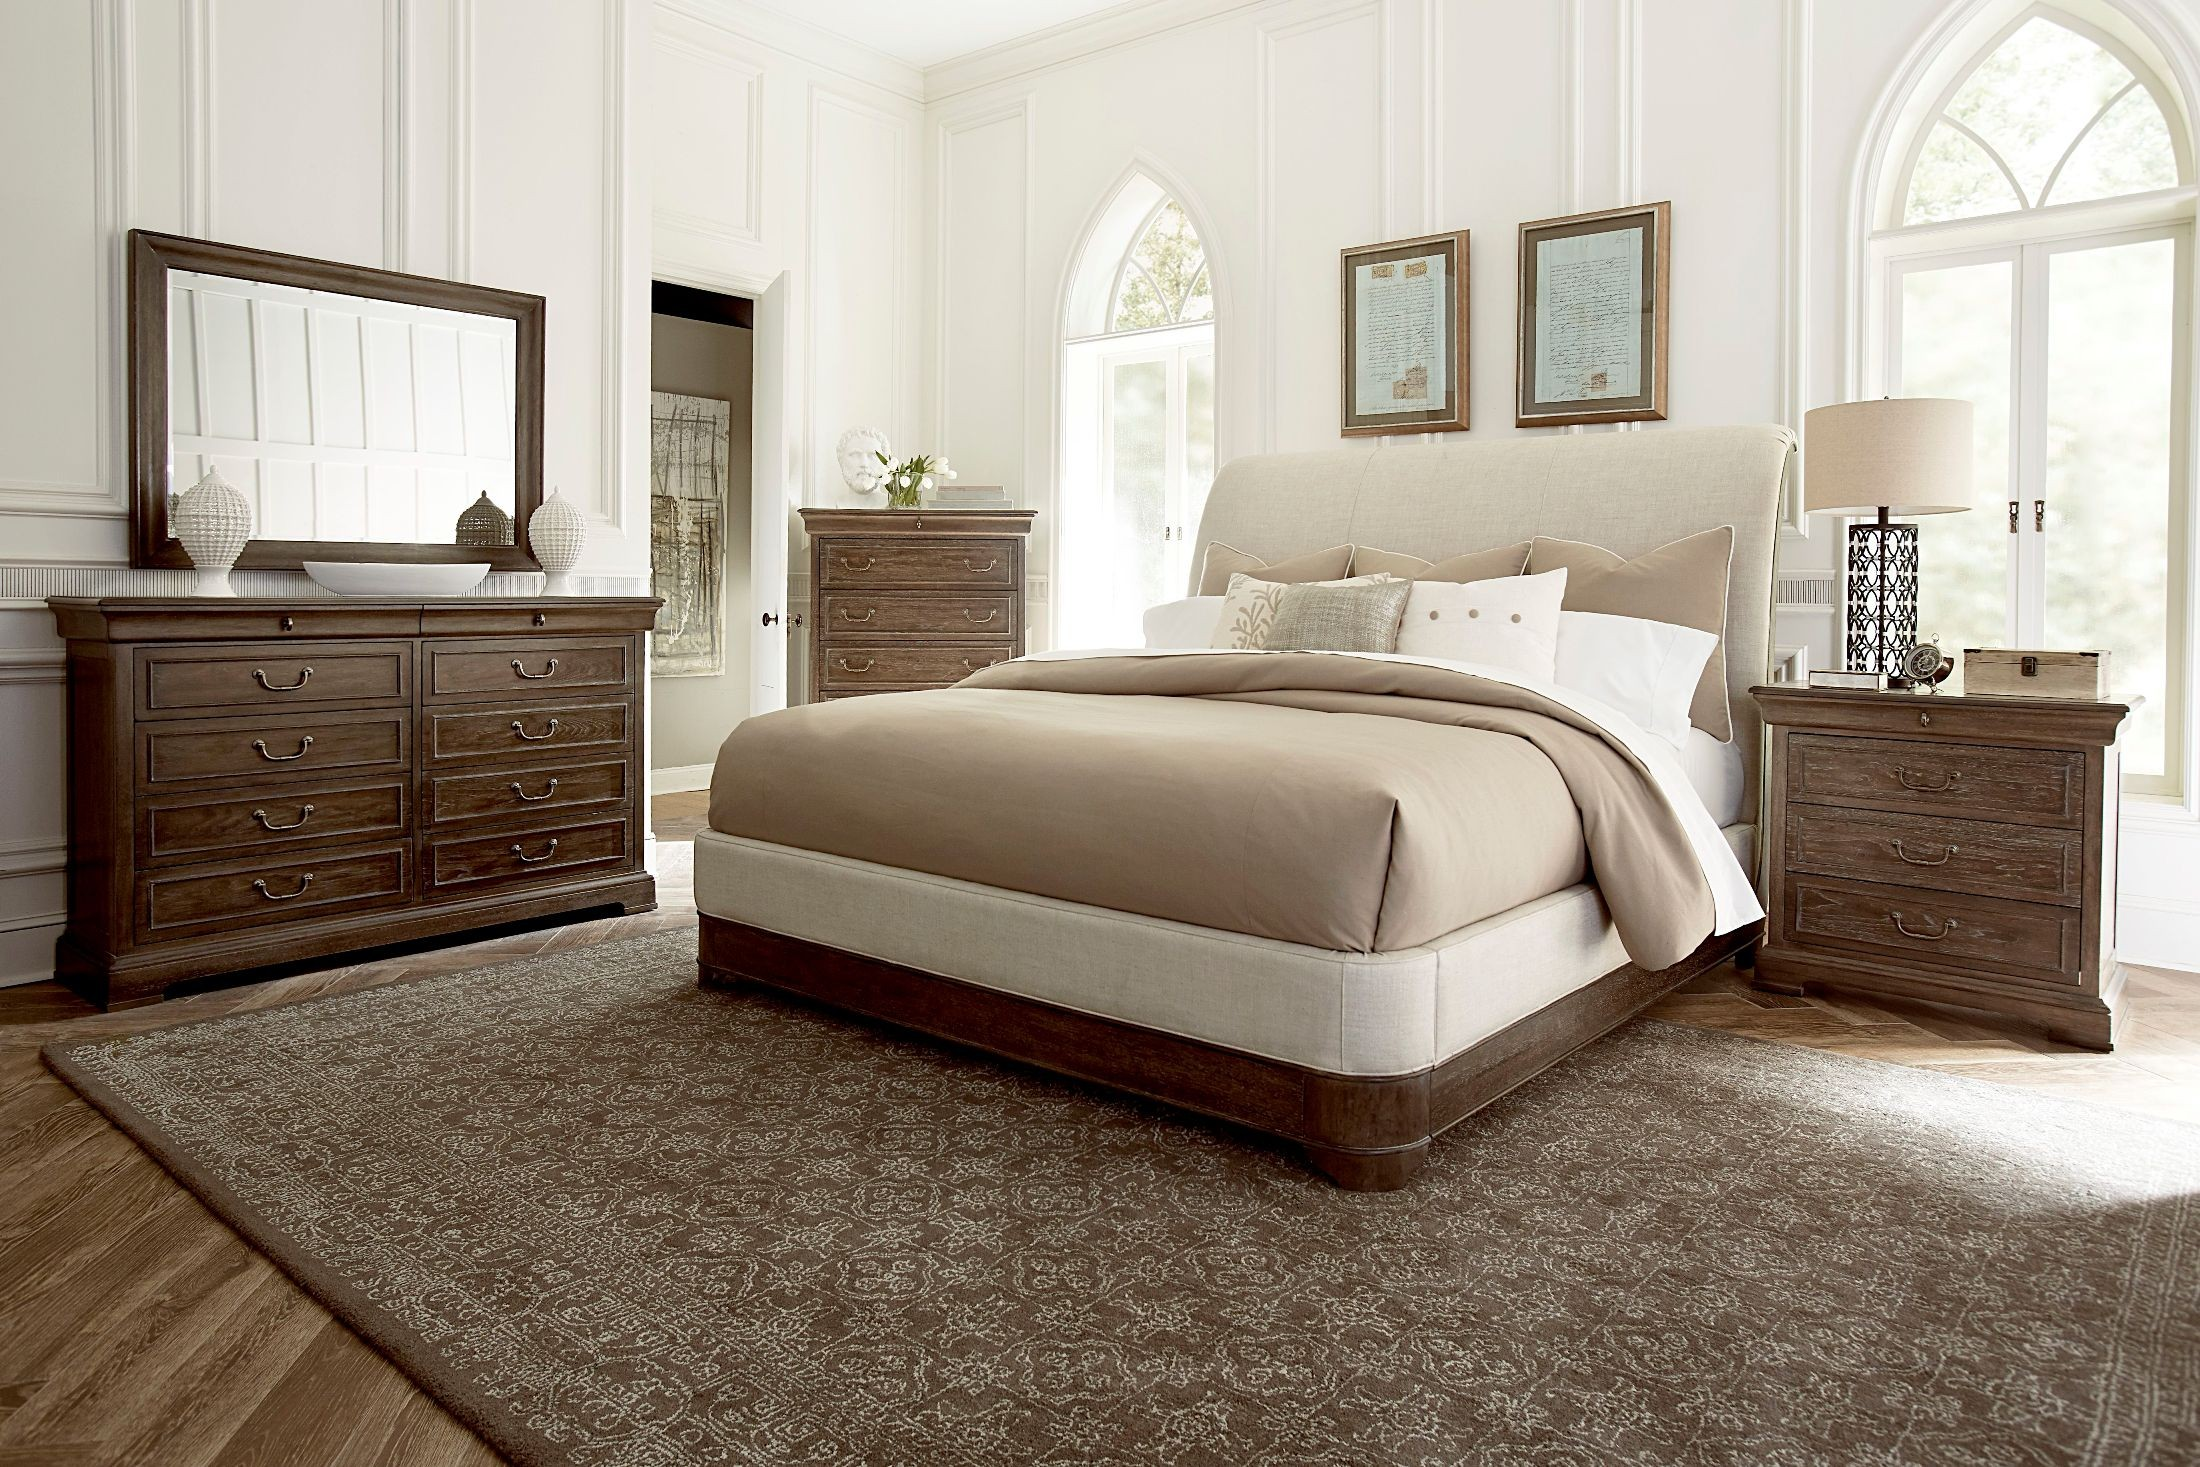 Bedroom sets coleman furniture - 549494